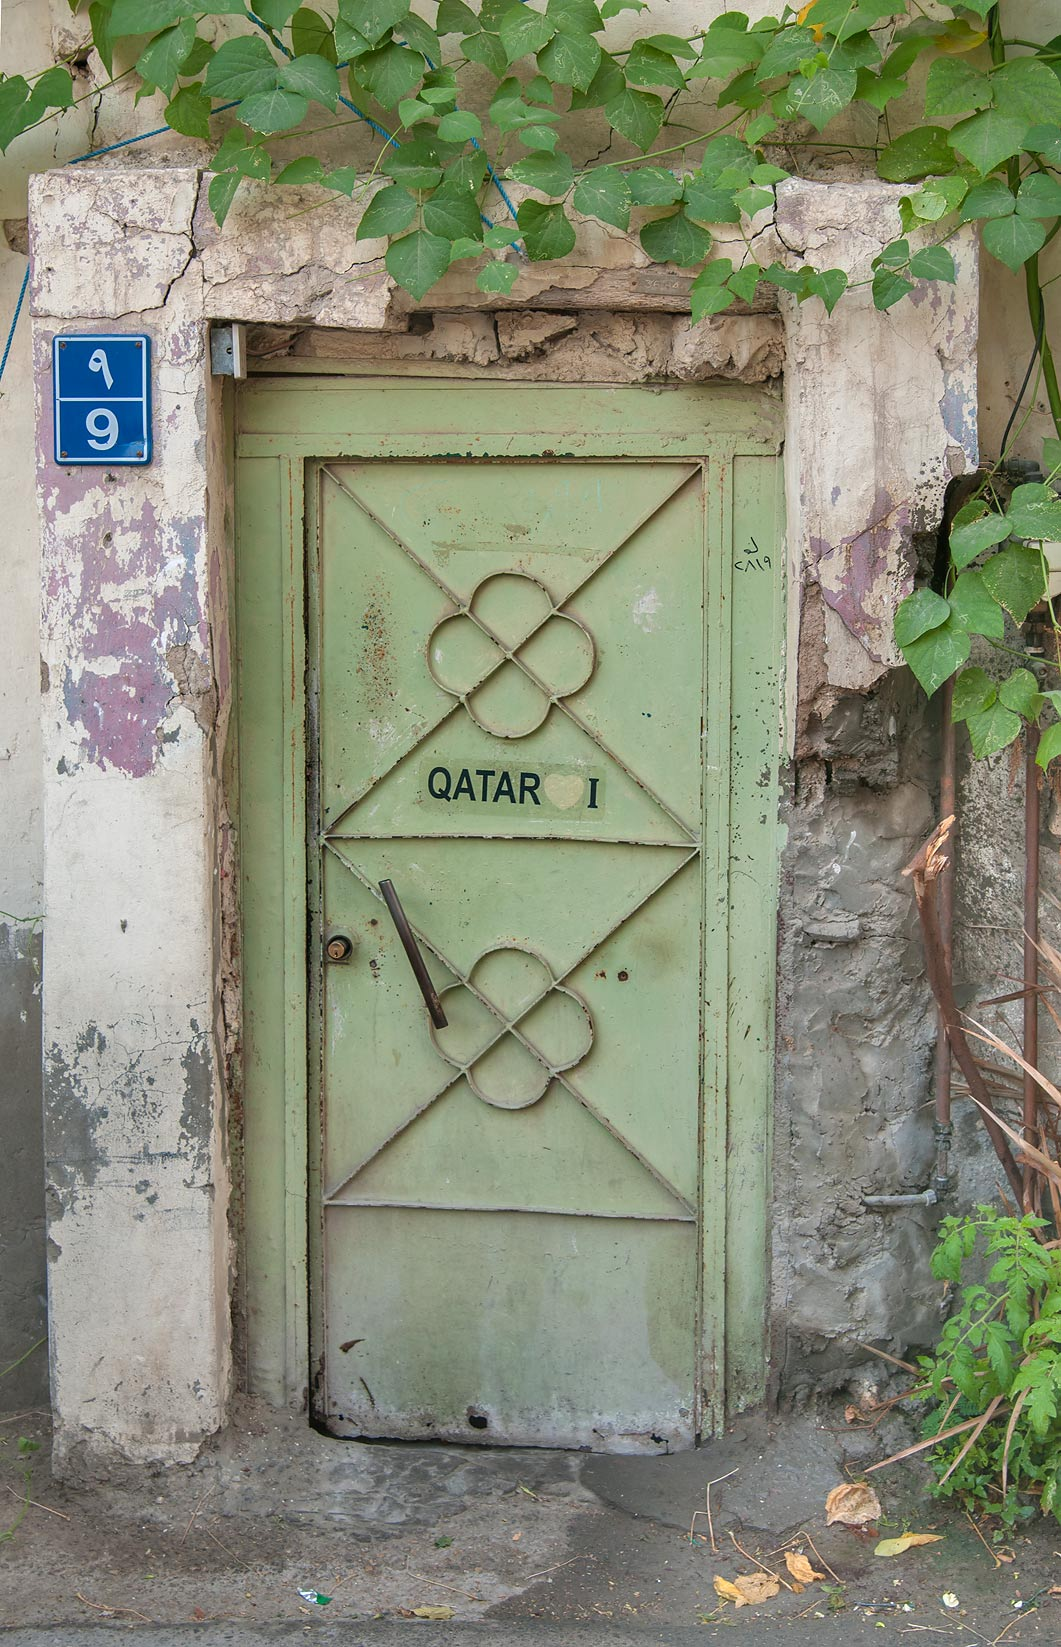 Green doorway in Musheirib area. Doha, Qatar